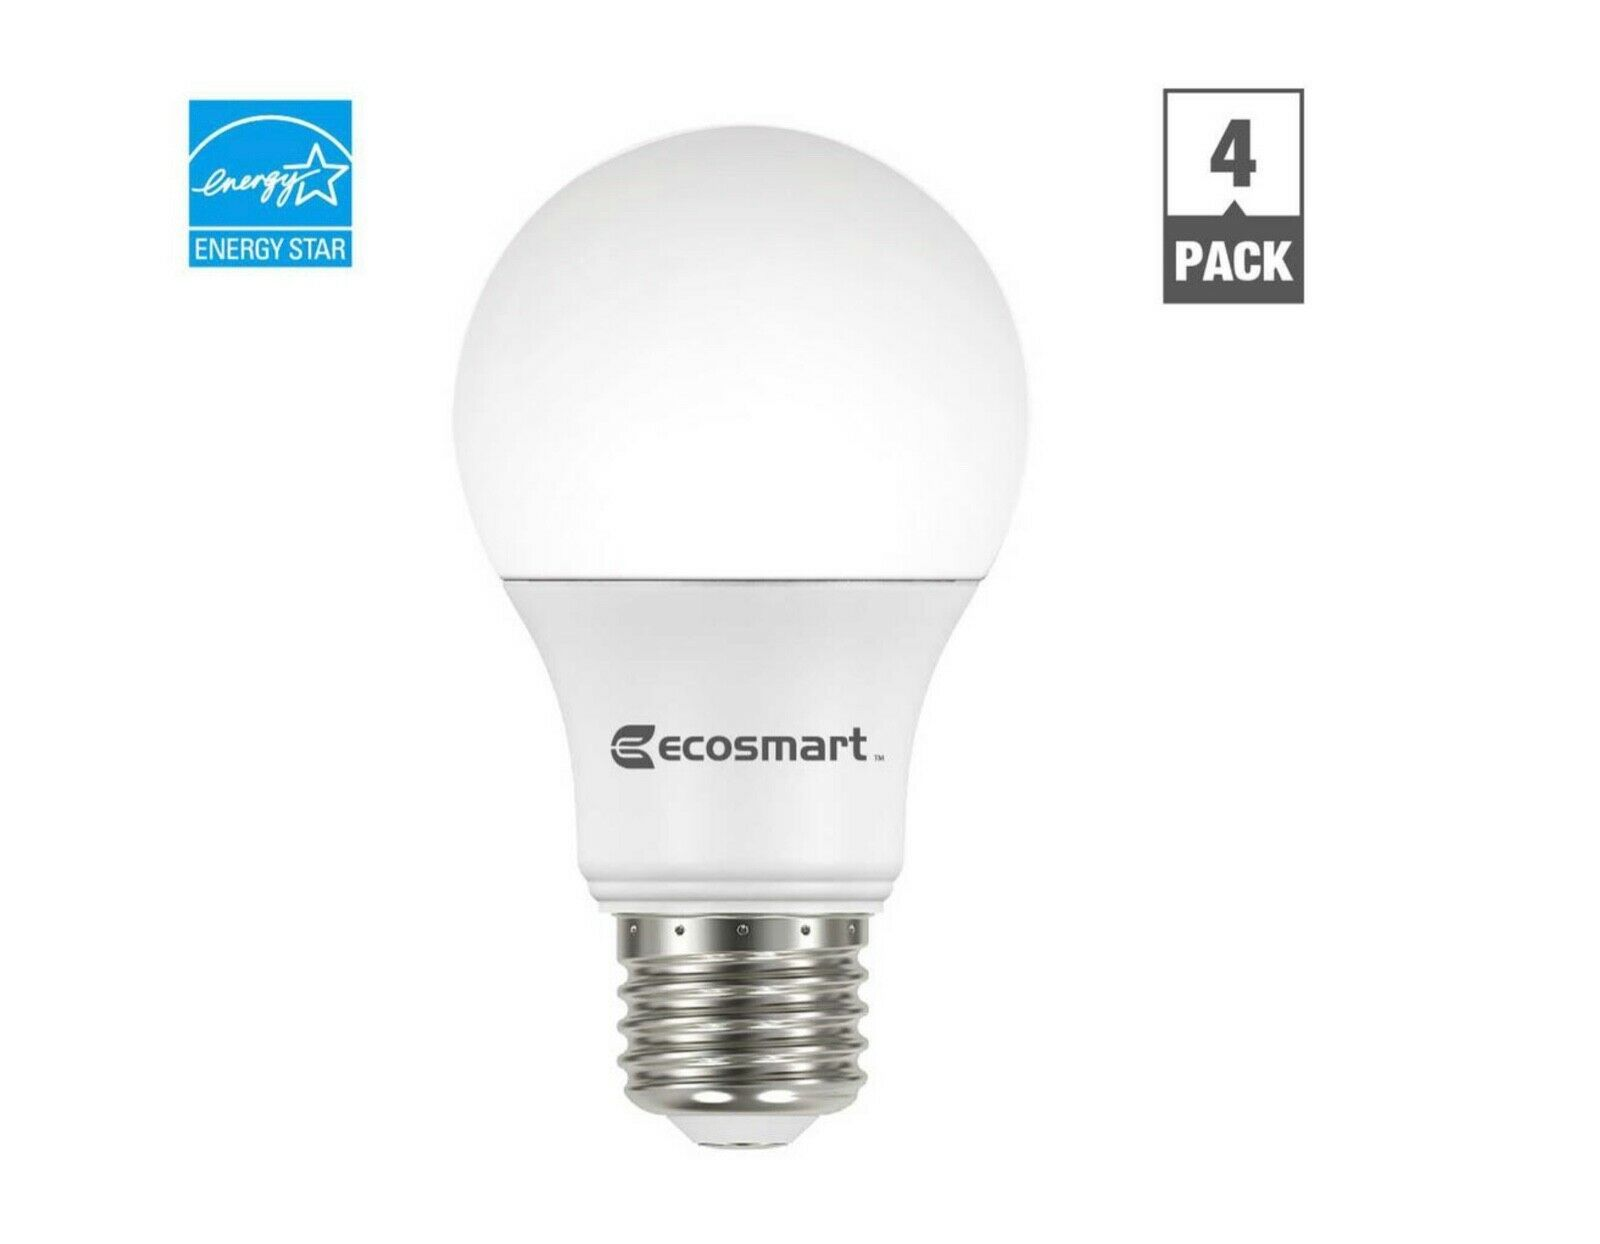 Primary image for Ecosmart 40-Watt Equivalent A19 Dimmable LED Light Bulb Soft White (4 Pack)